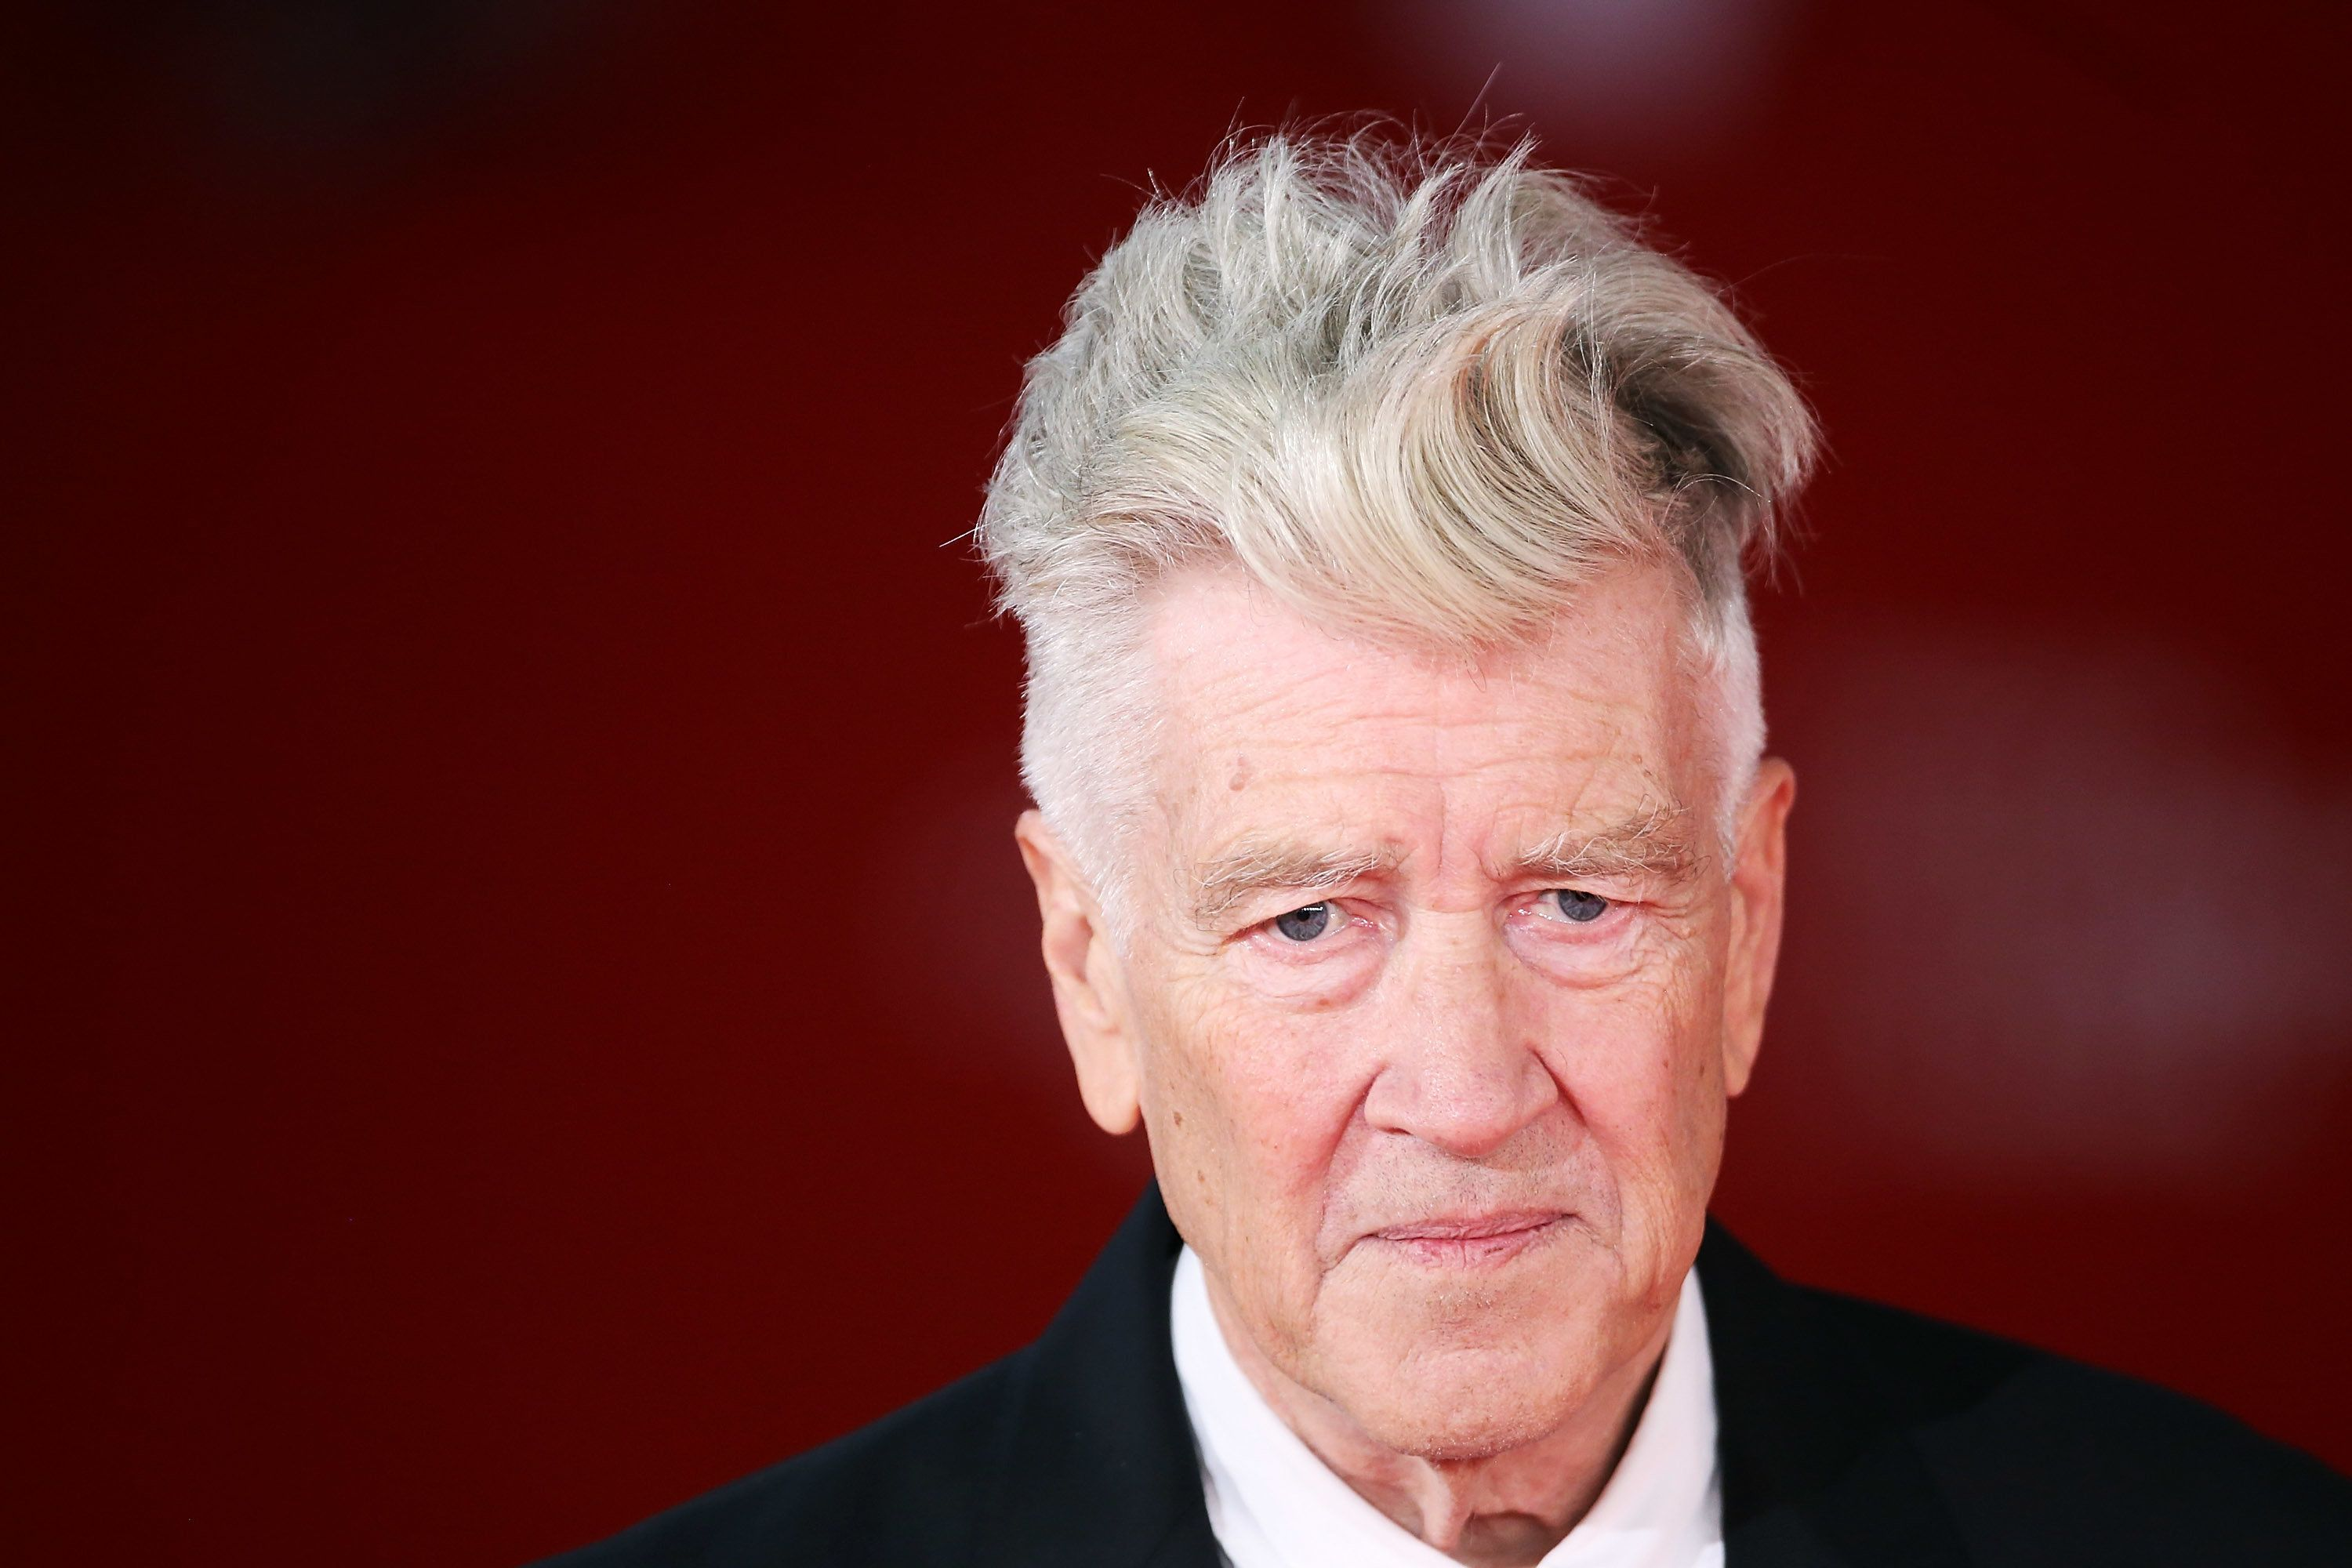 ROME, ITALY - NOVEMBER 04:  David Lynch walks the red carpet during the 12th Rome Film Fest at Auditorium Parco Della Musica on November 4, 2017 in Rome, Italy.  (Photo by Maria Moratti/Contigo/Getty Images)